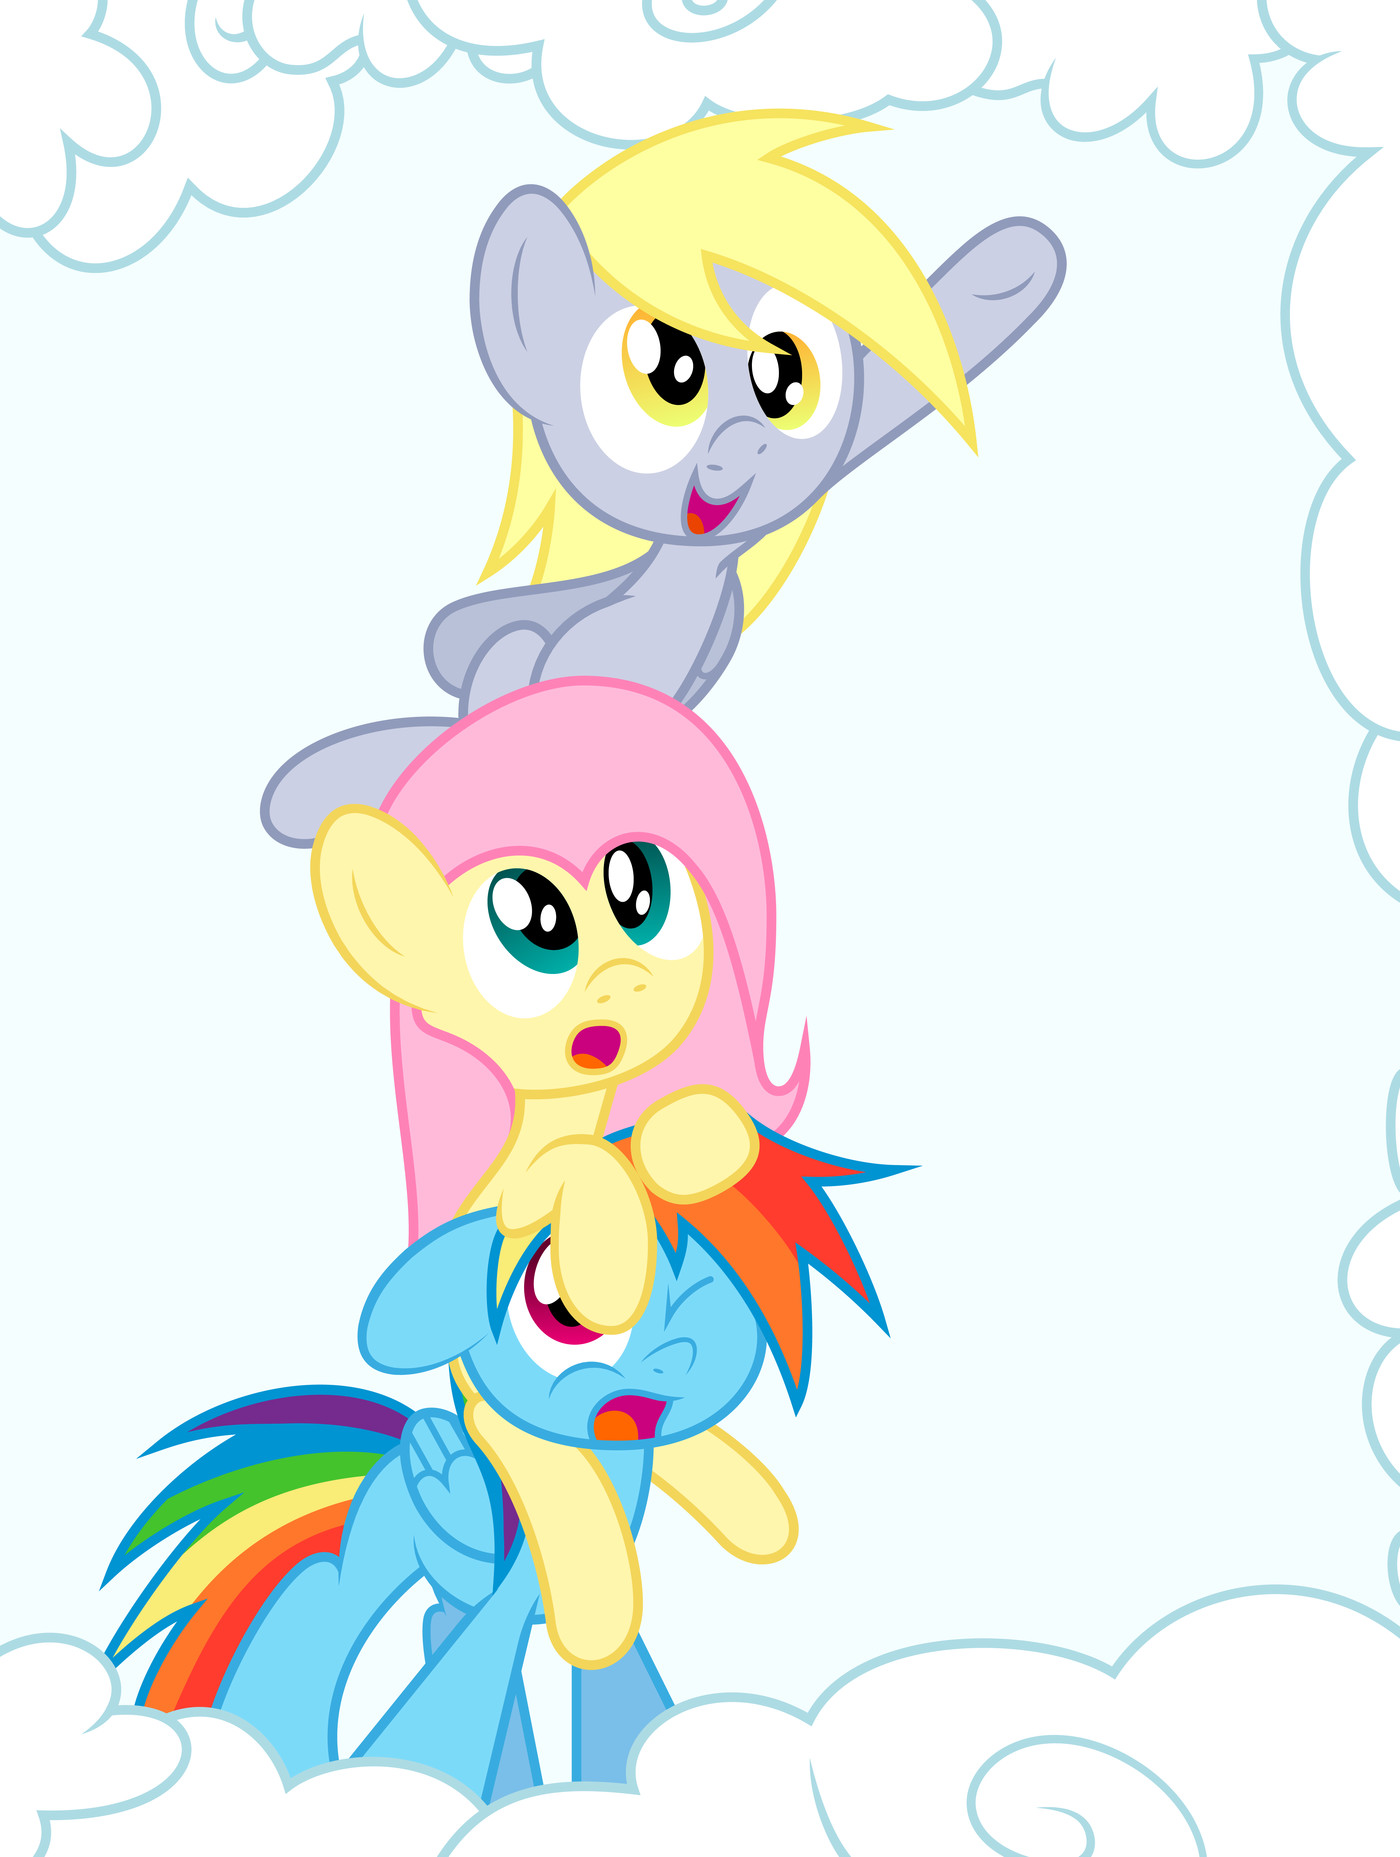 derpy hooves, fluttershy, and rainbow dash drawn by ...  Filly Rainbow Dash And Derpy